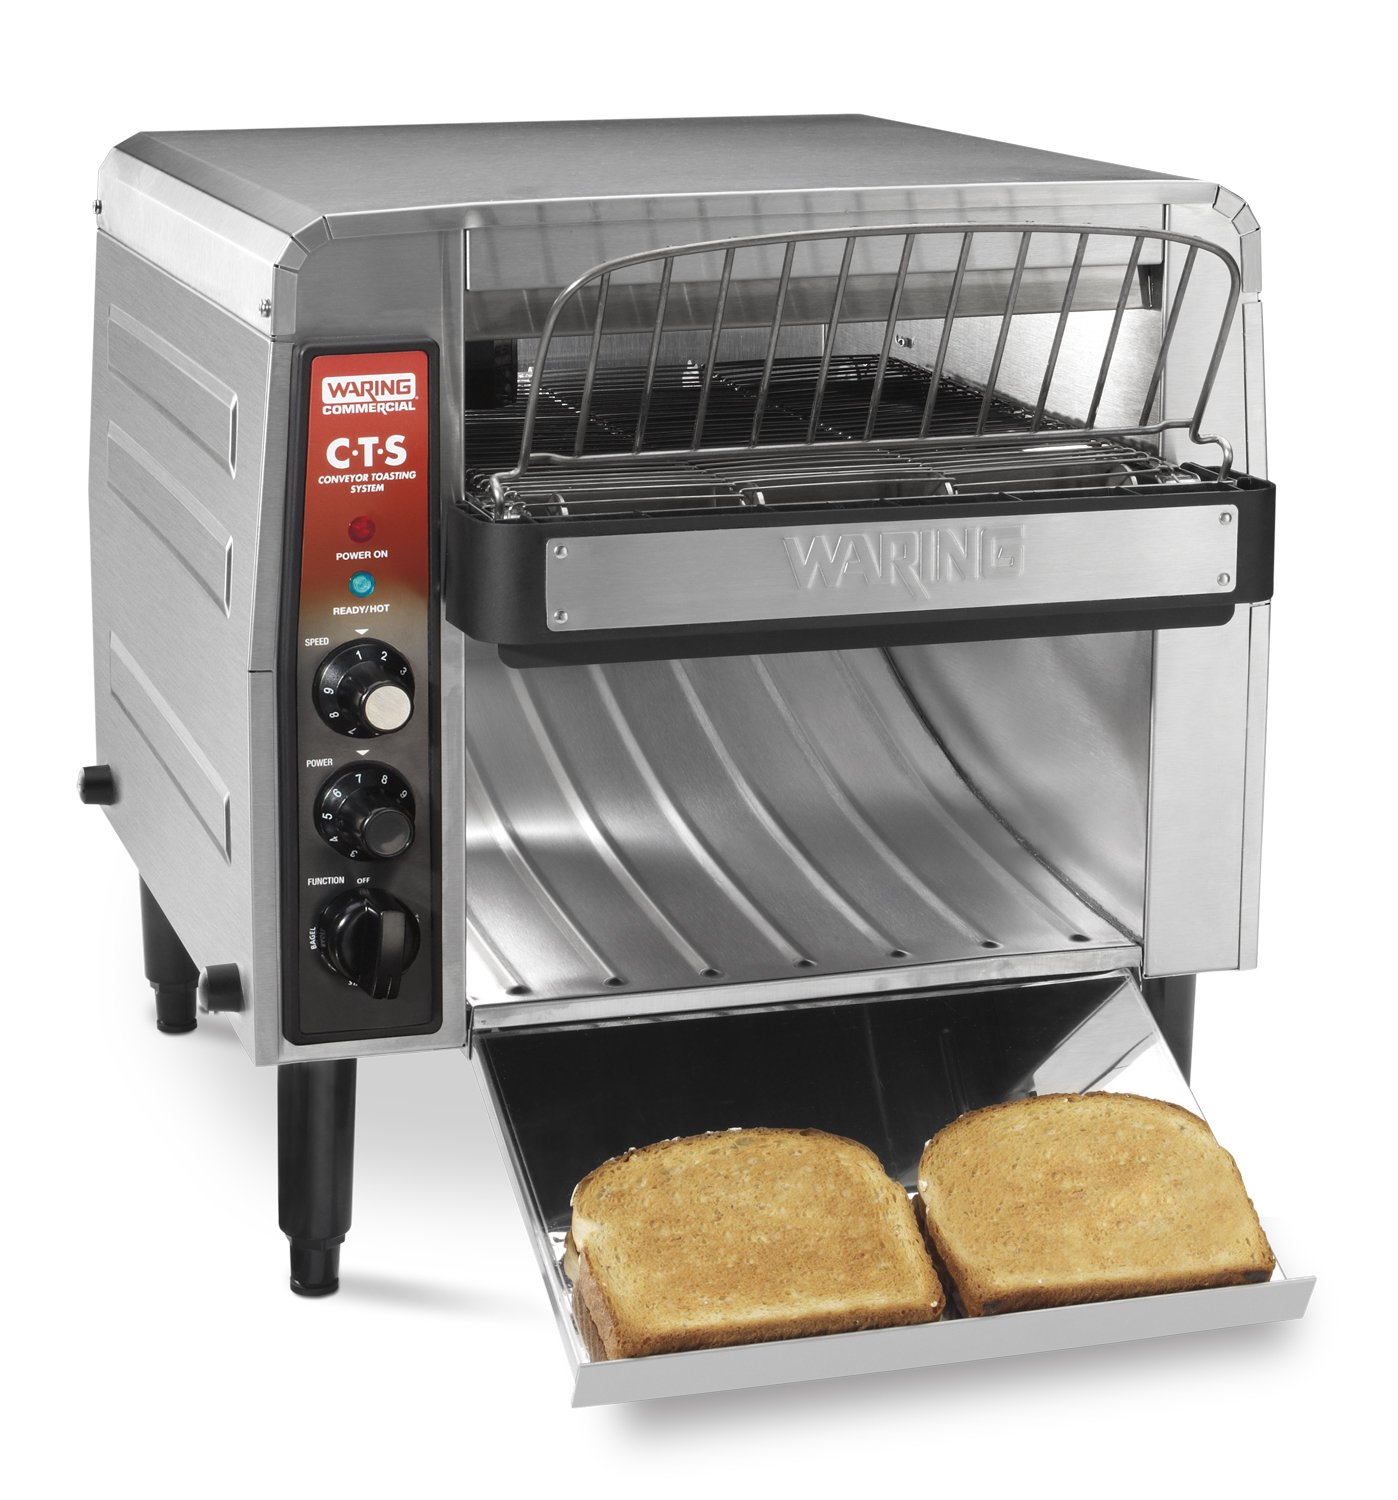 Waring Kansas City Mall Commercial CTS1000B Conveyer Toaster Regular discount per ho 1000+ slices